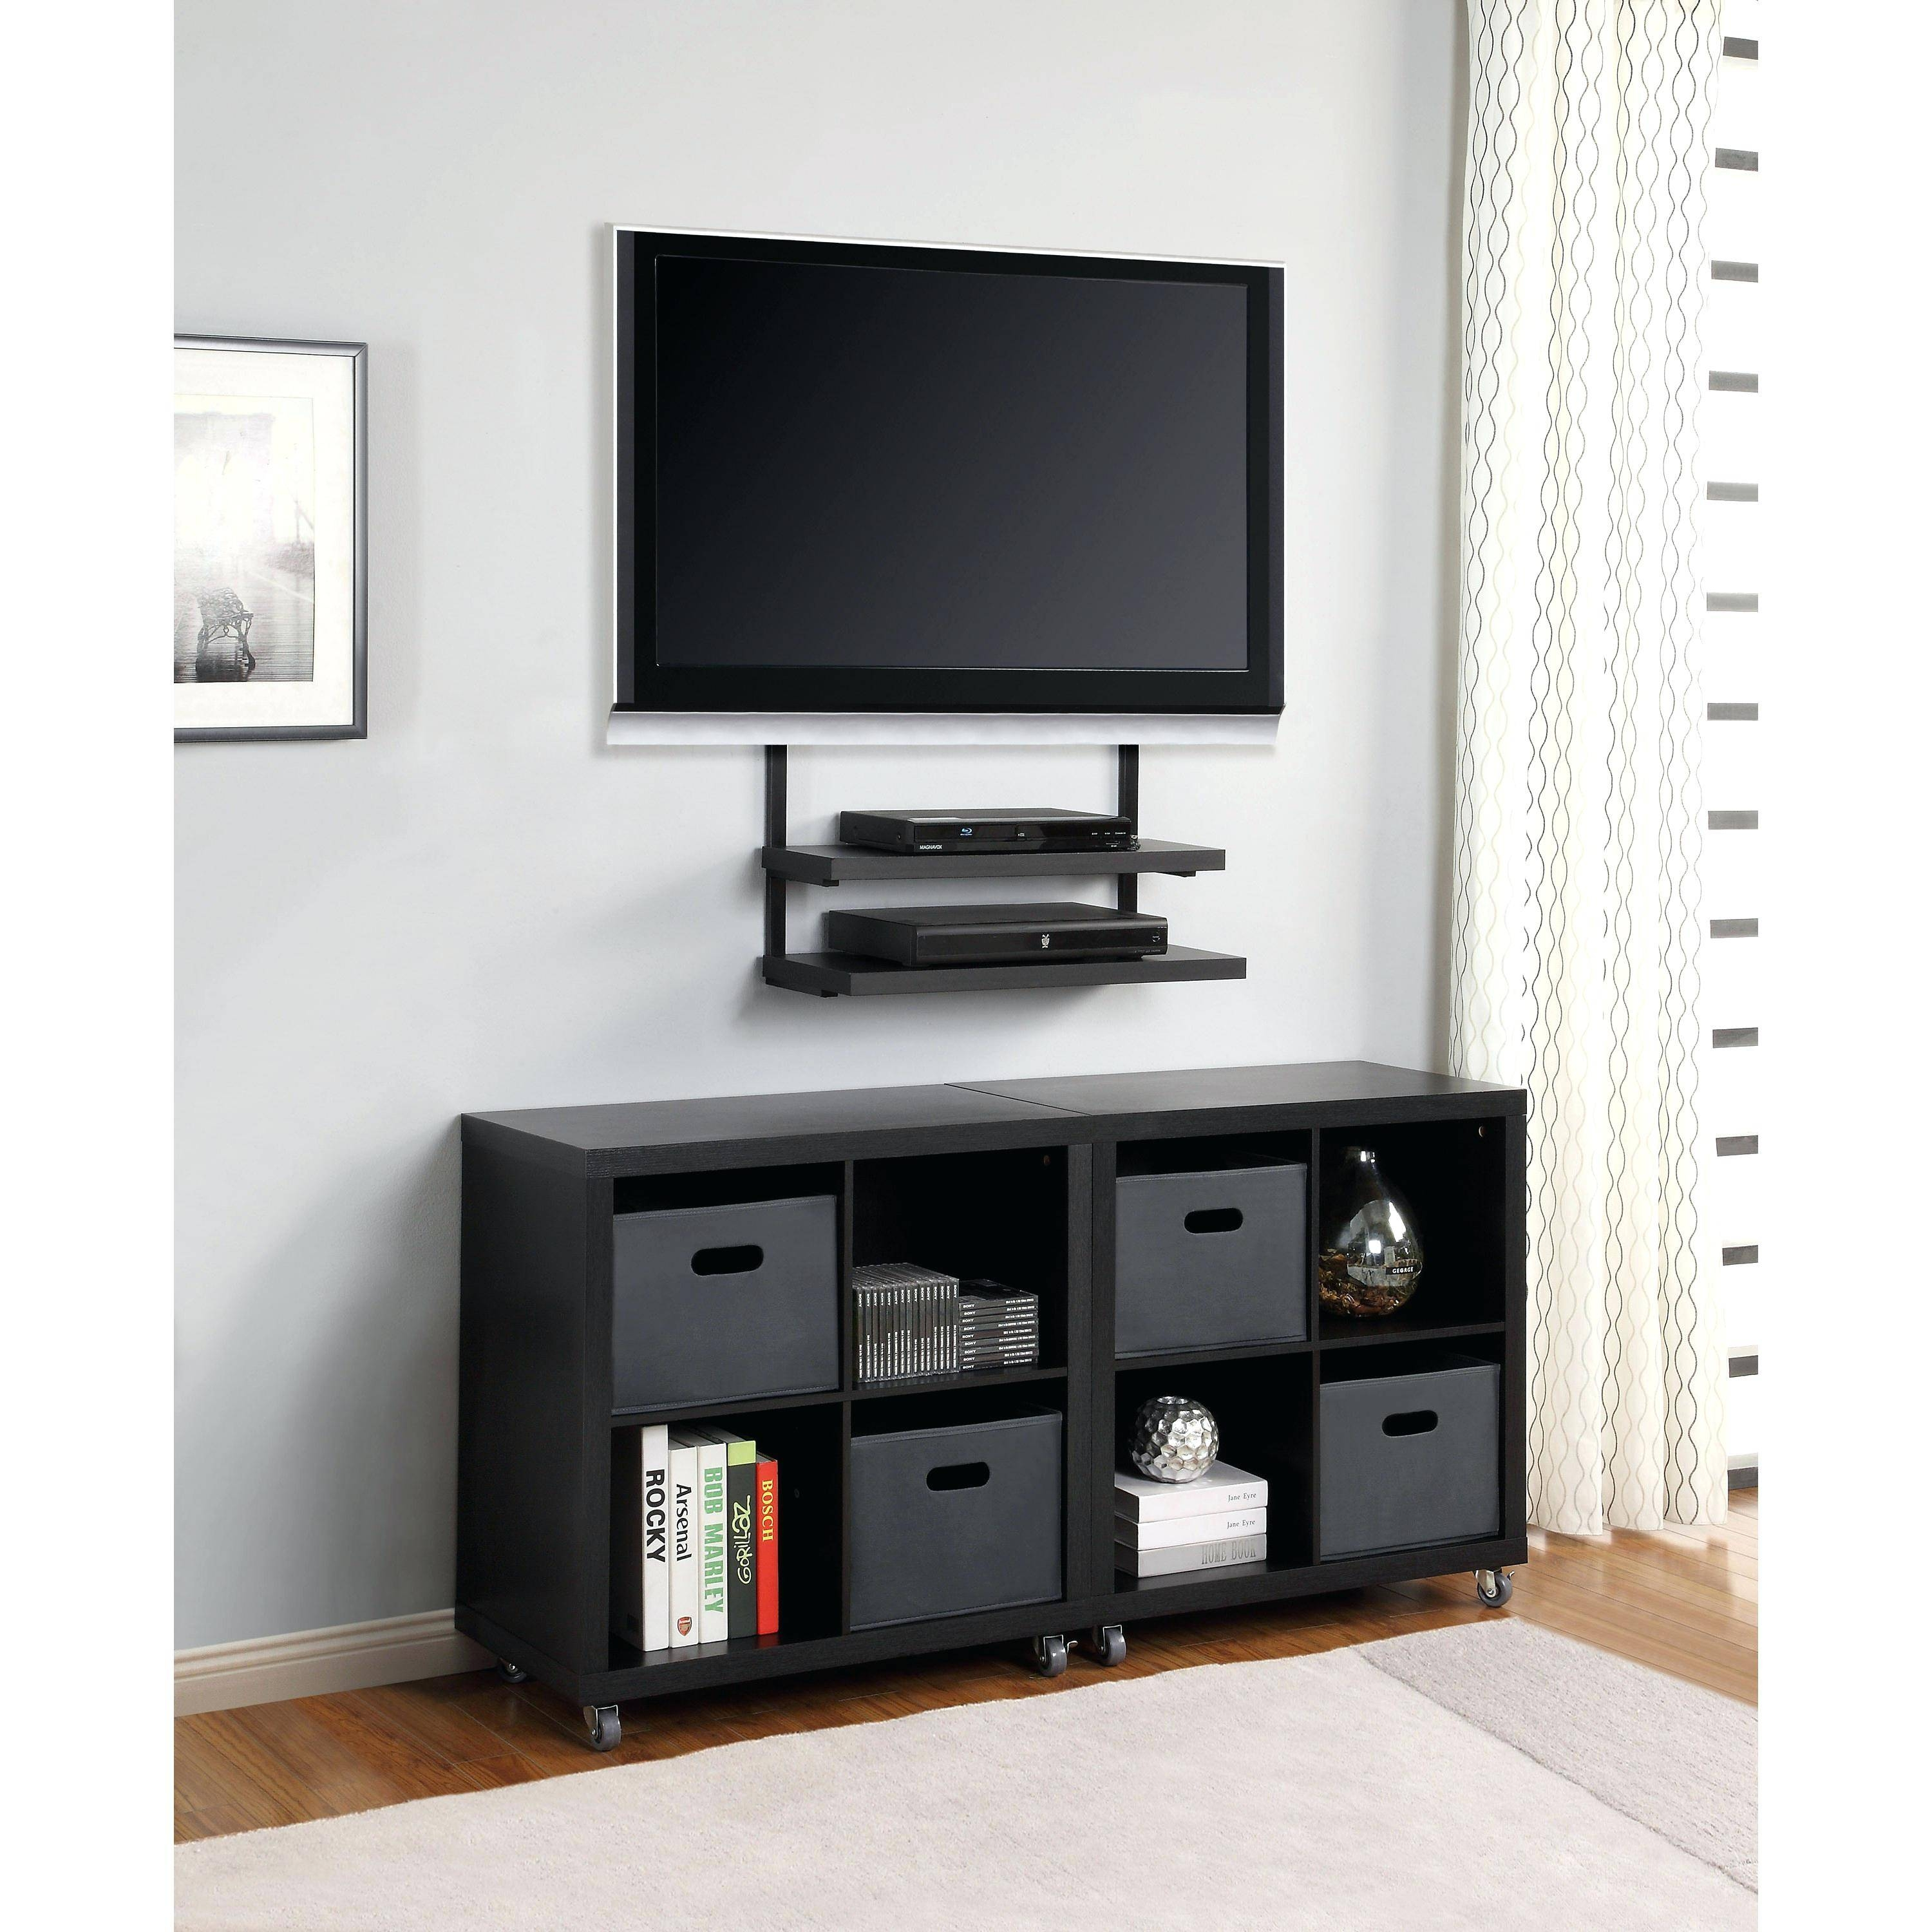 Tv Stand : Corner Wall Tv Stand Mount 1000 Ideas About Tv Corner within Unique Corner Tv Stands (Image 8 of 15)